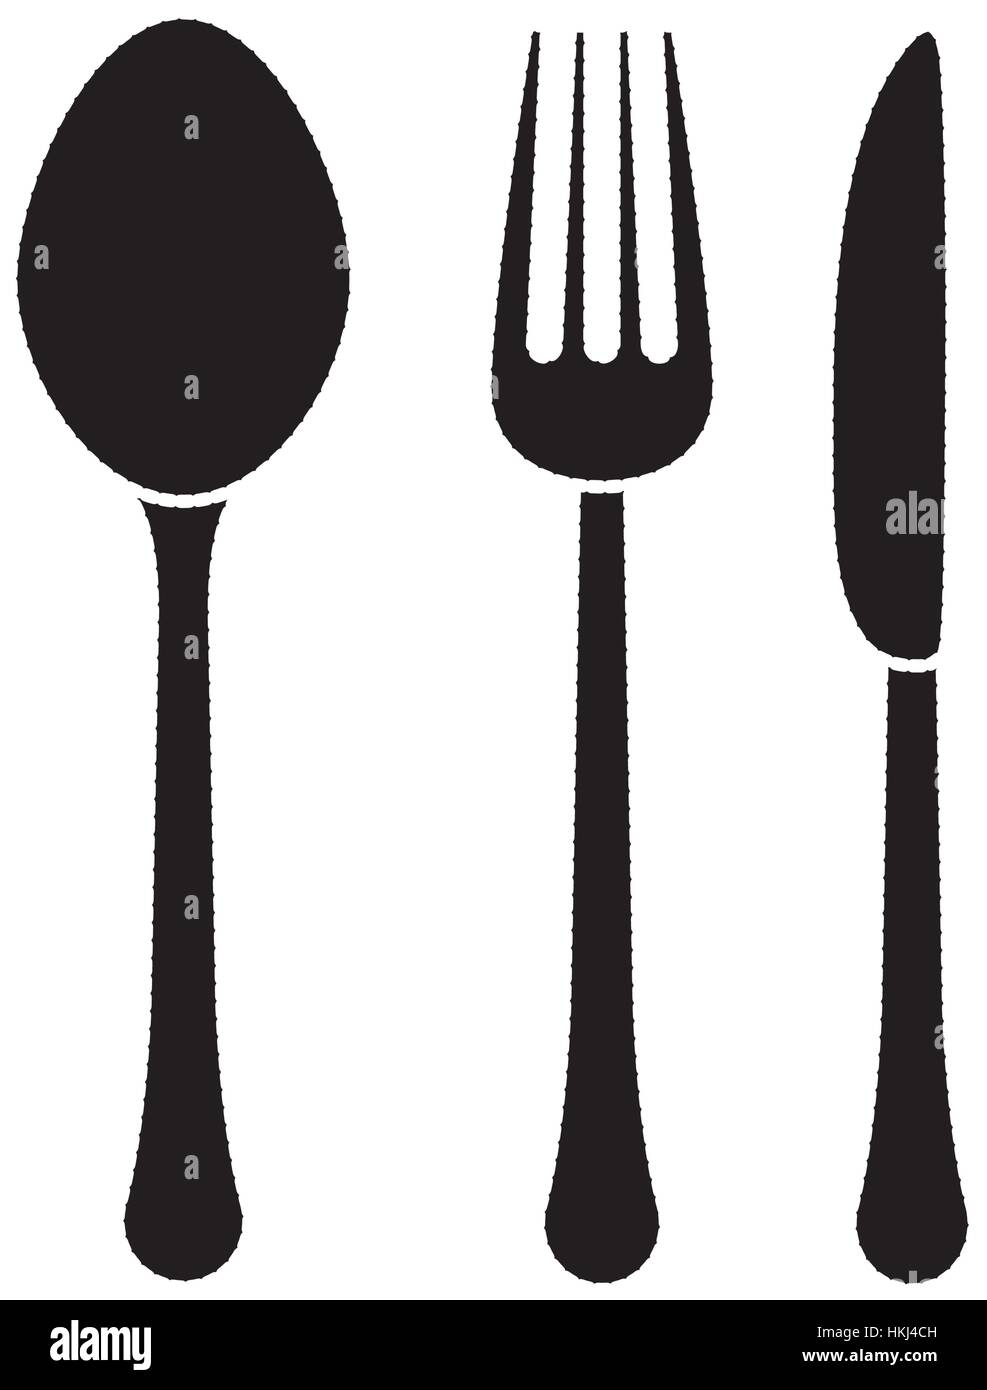 spoon knife fork cutlery icon image vector illustration